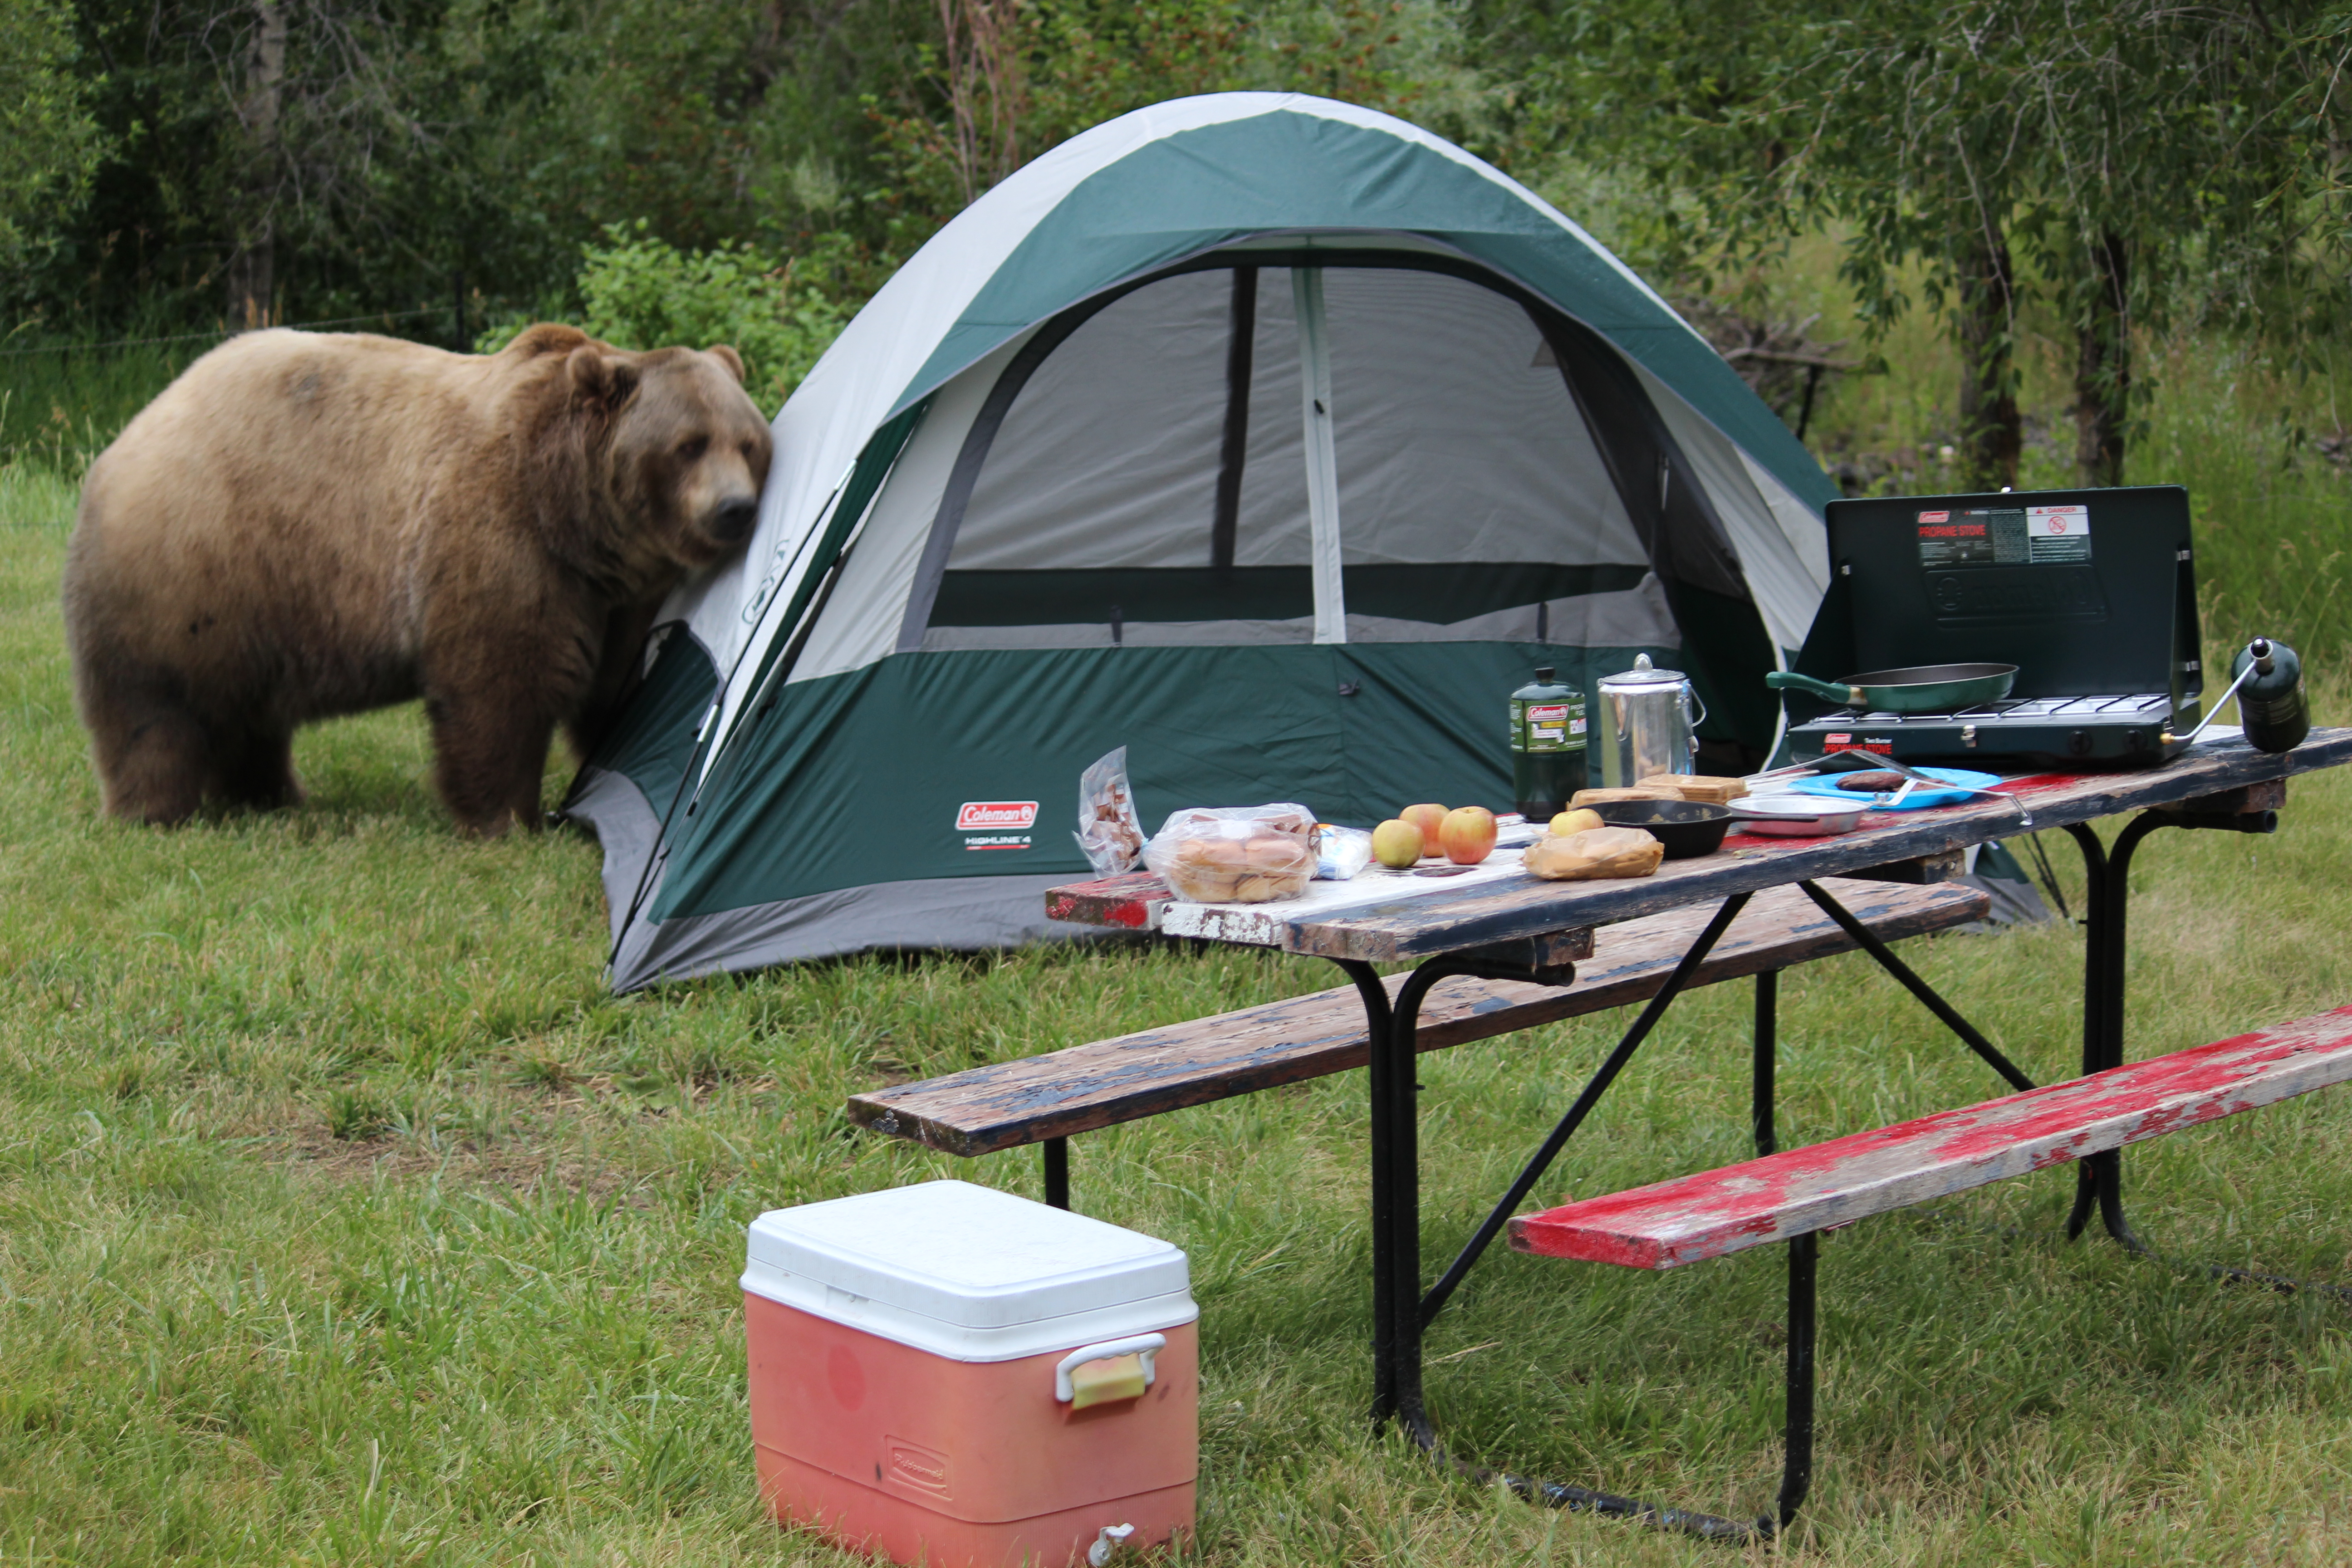 Never store attractants in your tent. & Wyoming Game and Fish Department - Bear Wise Wyoming